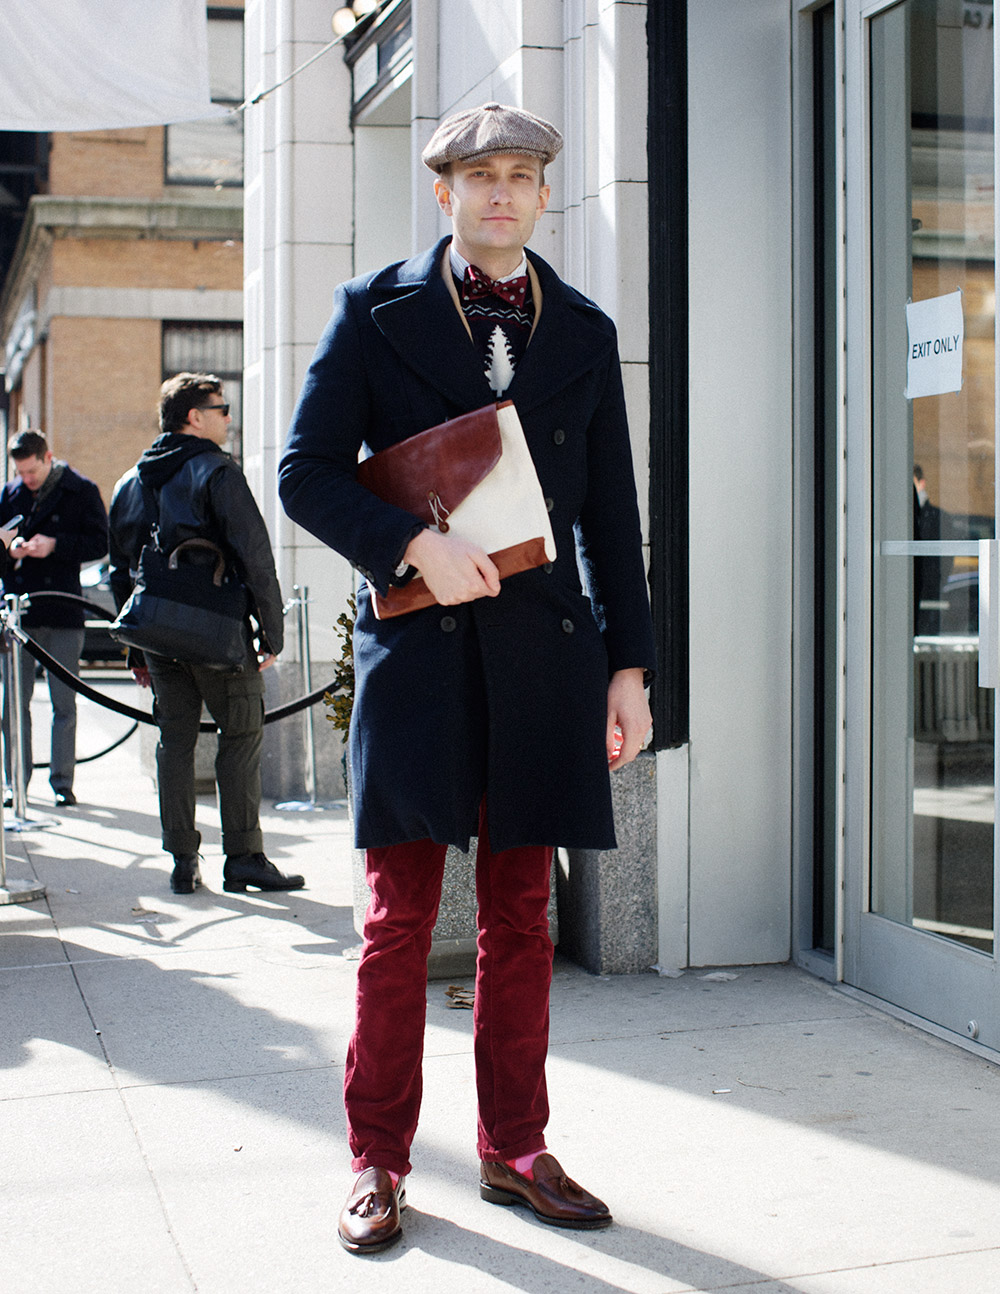 FINE-AND-DANDY-NEW-YORK-STREETSTYLE-PREP-matthew-fox.jpg